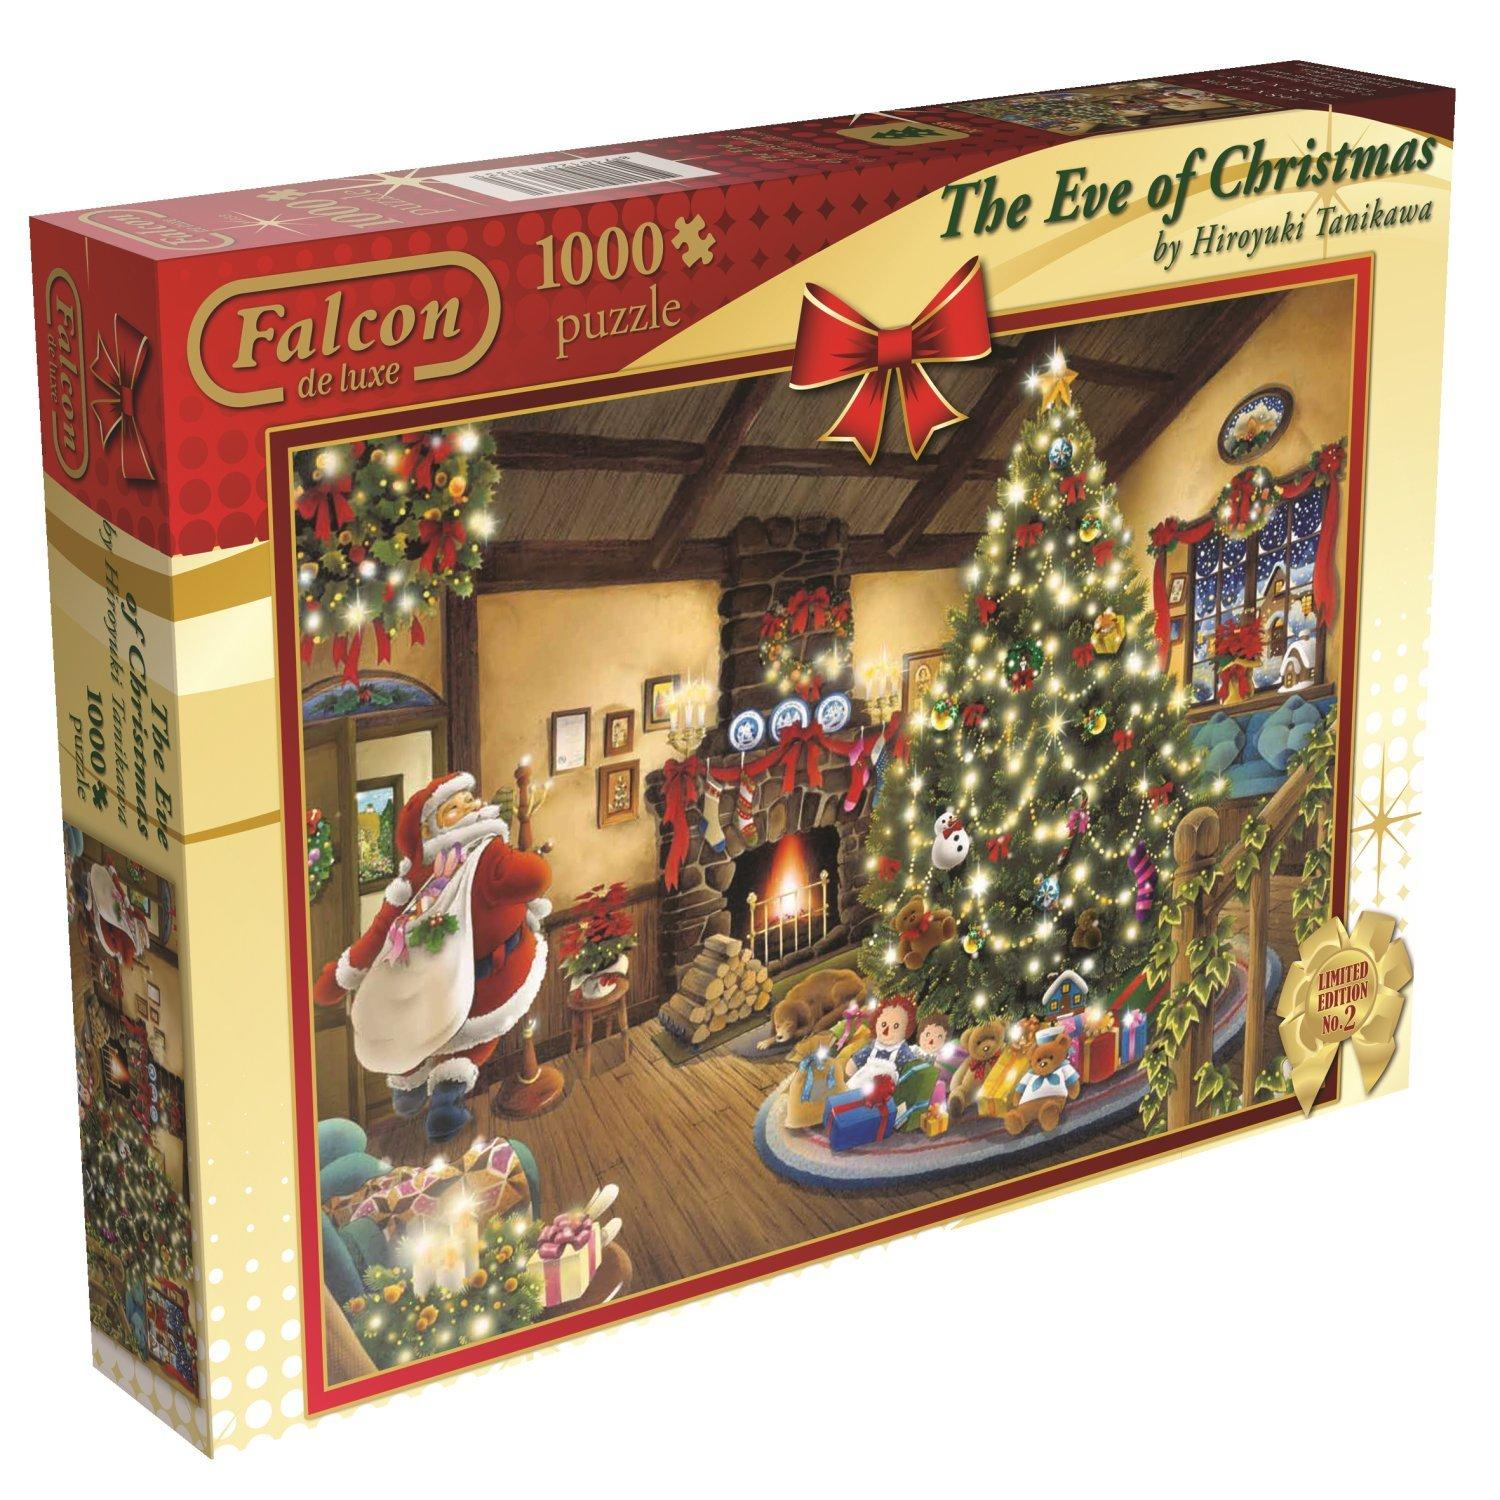 Christmas puzzle games for adults